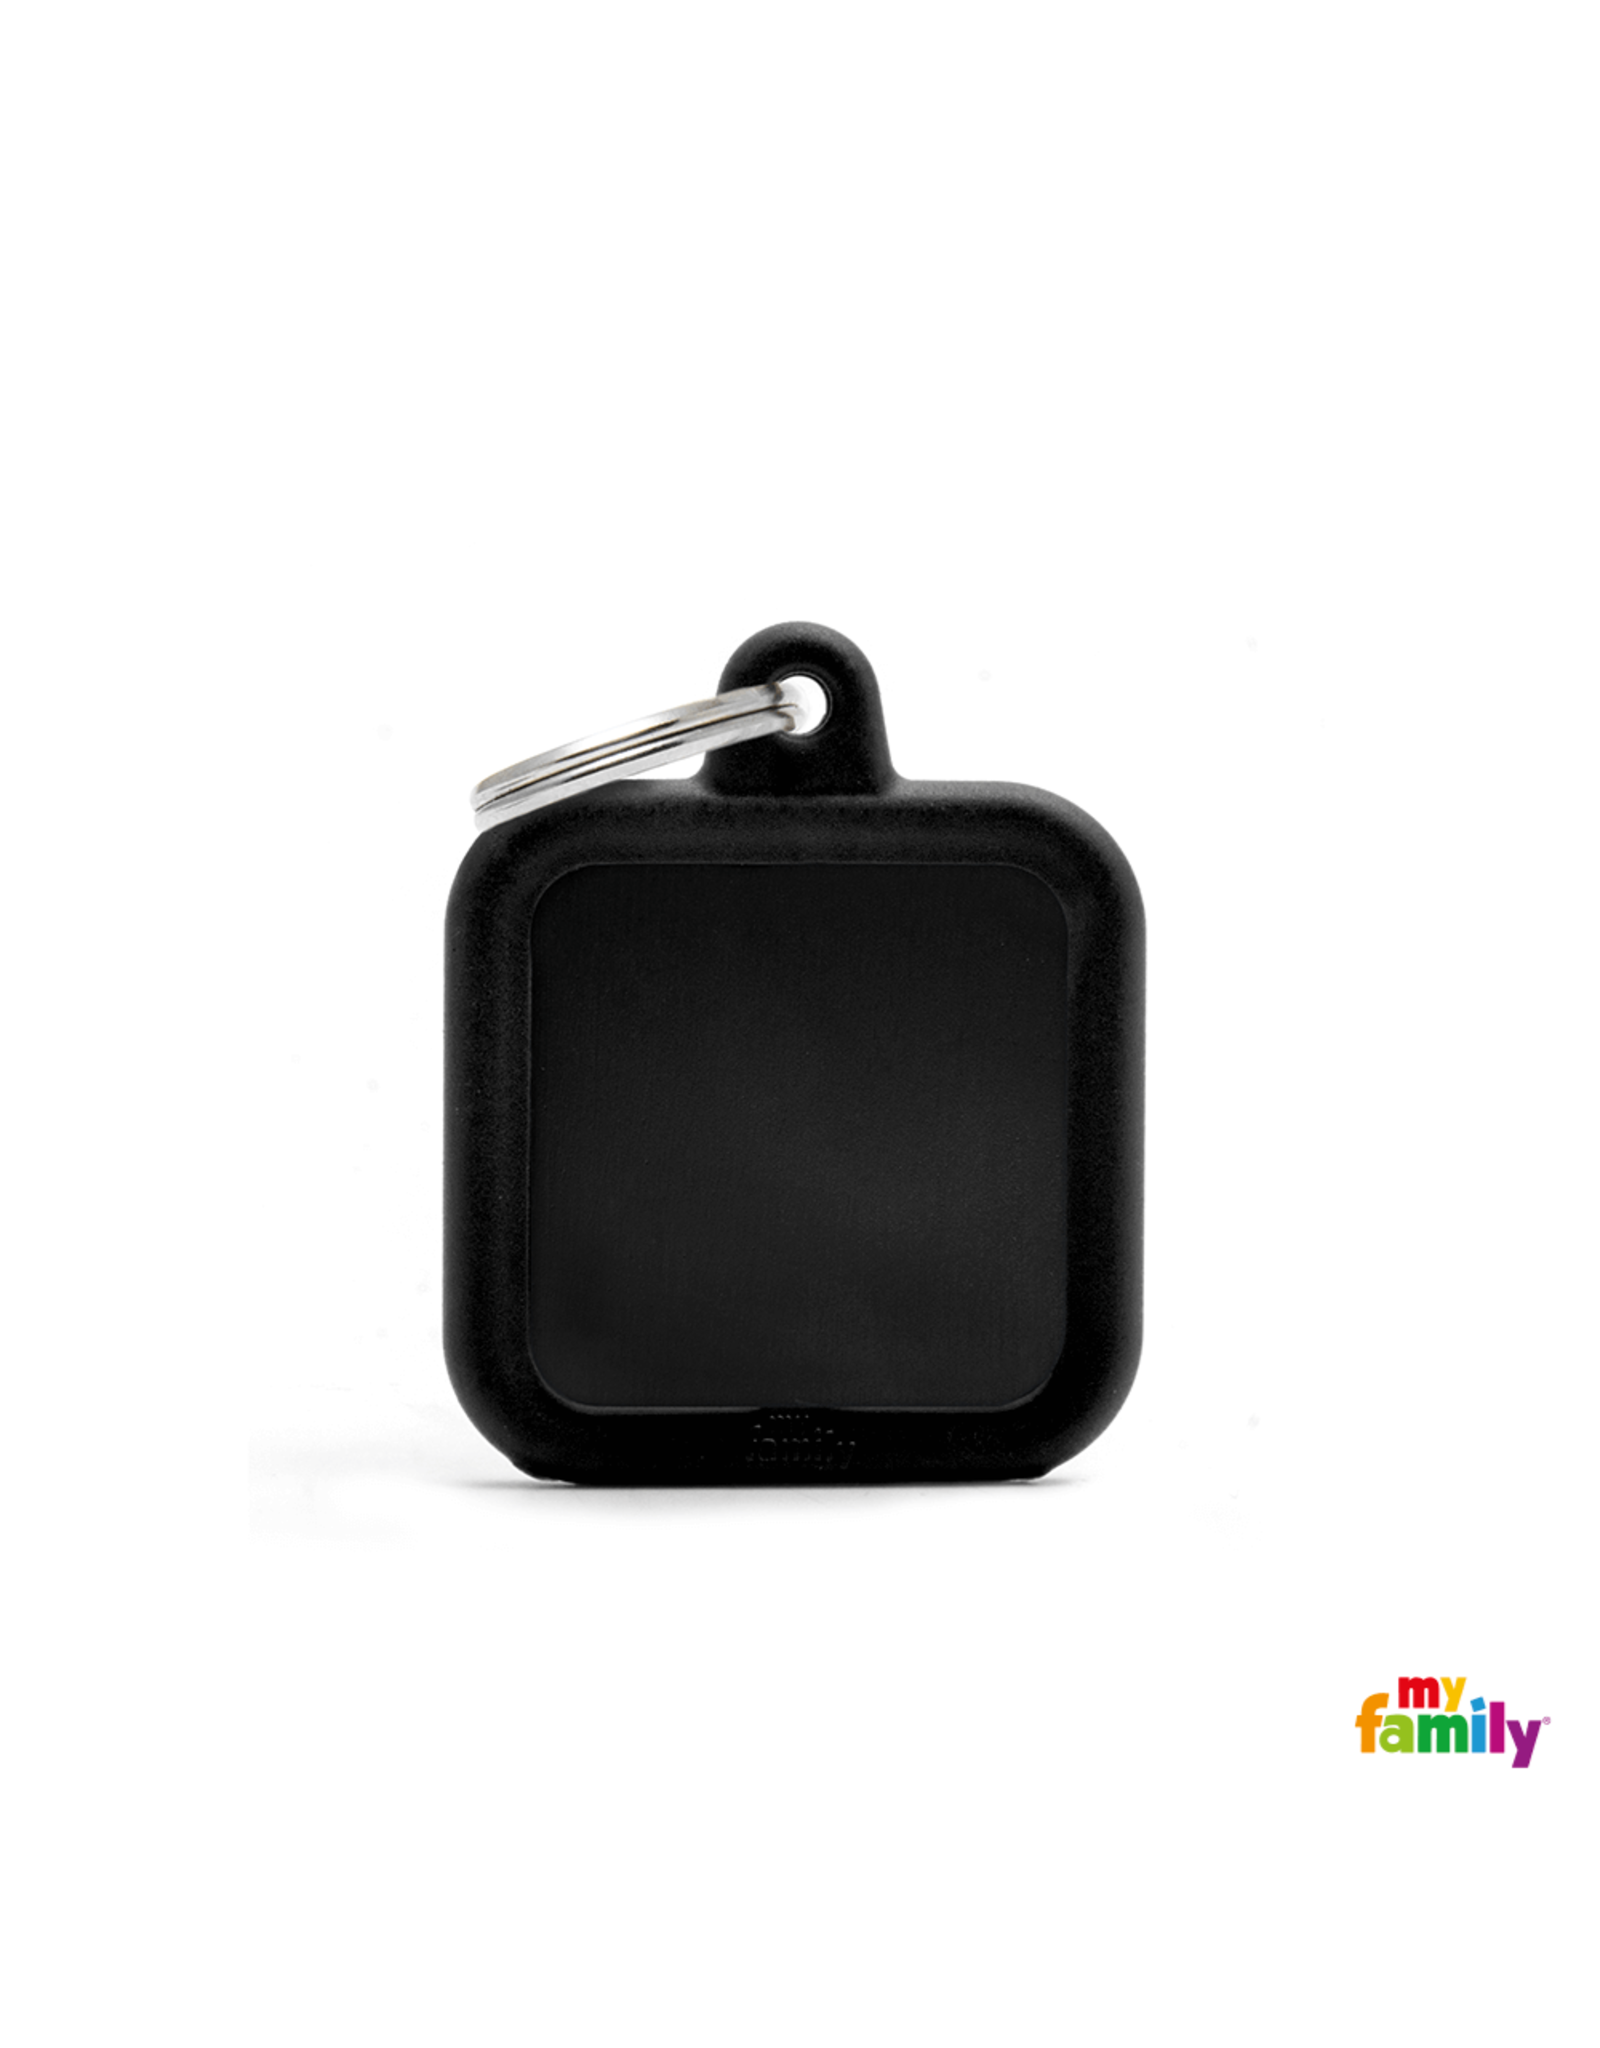 MyFamily Tag - Square Black Rubber